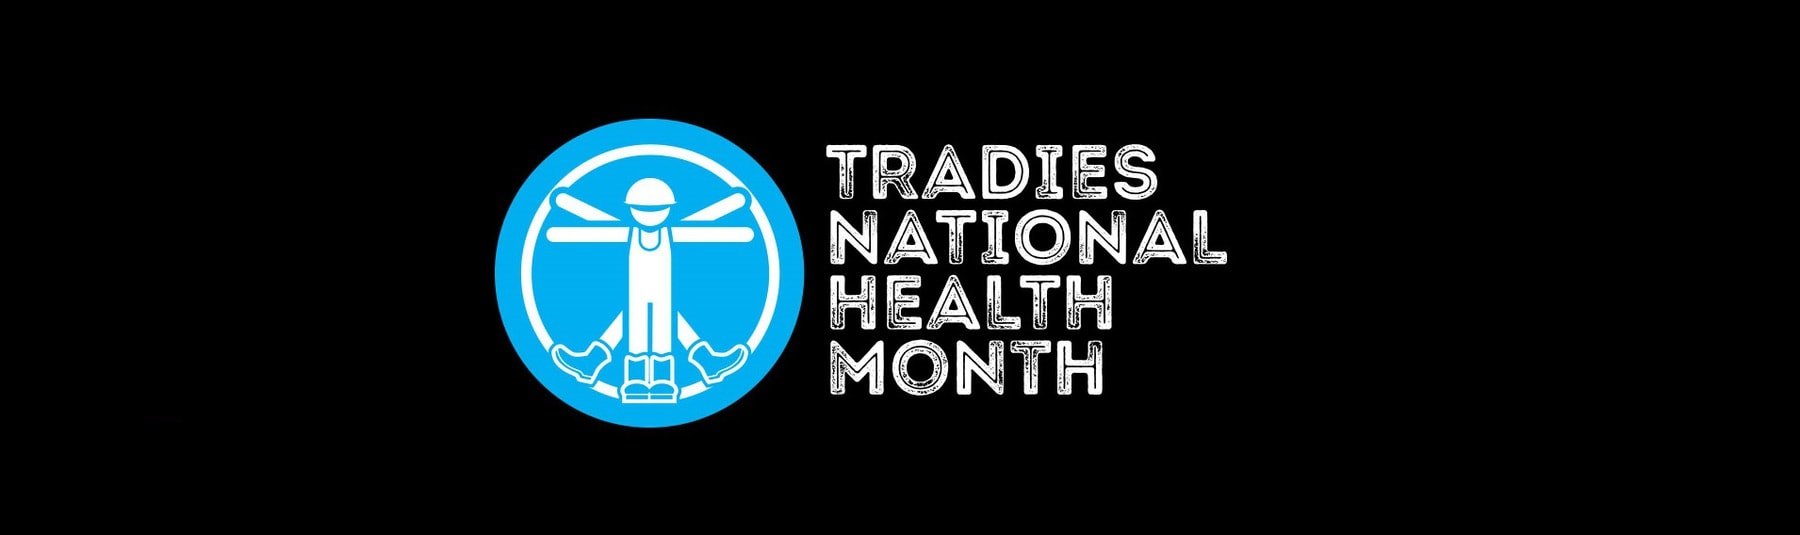 Tradies National Health Month Banner